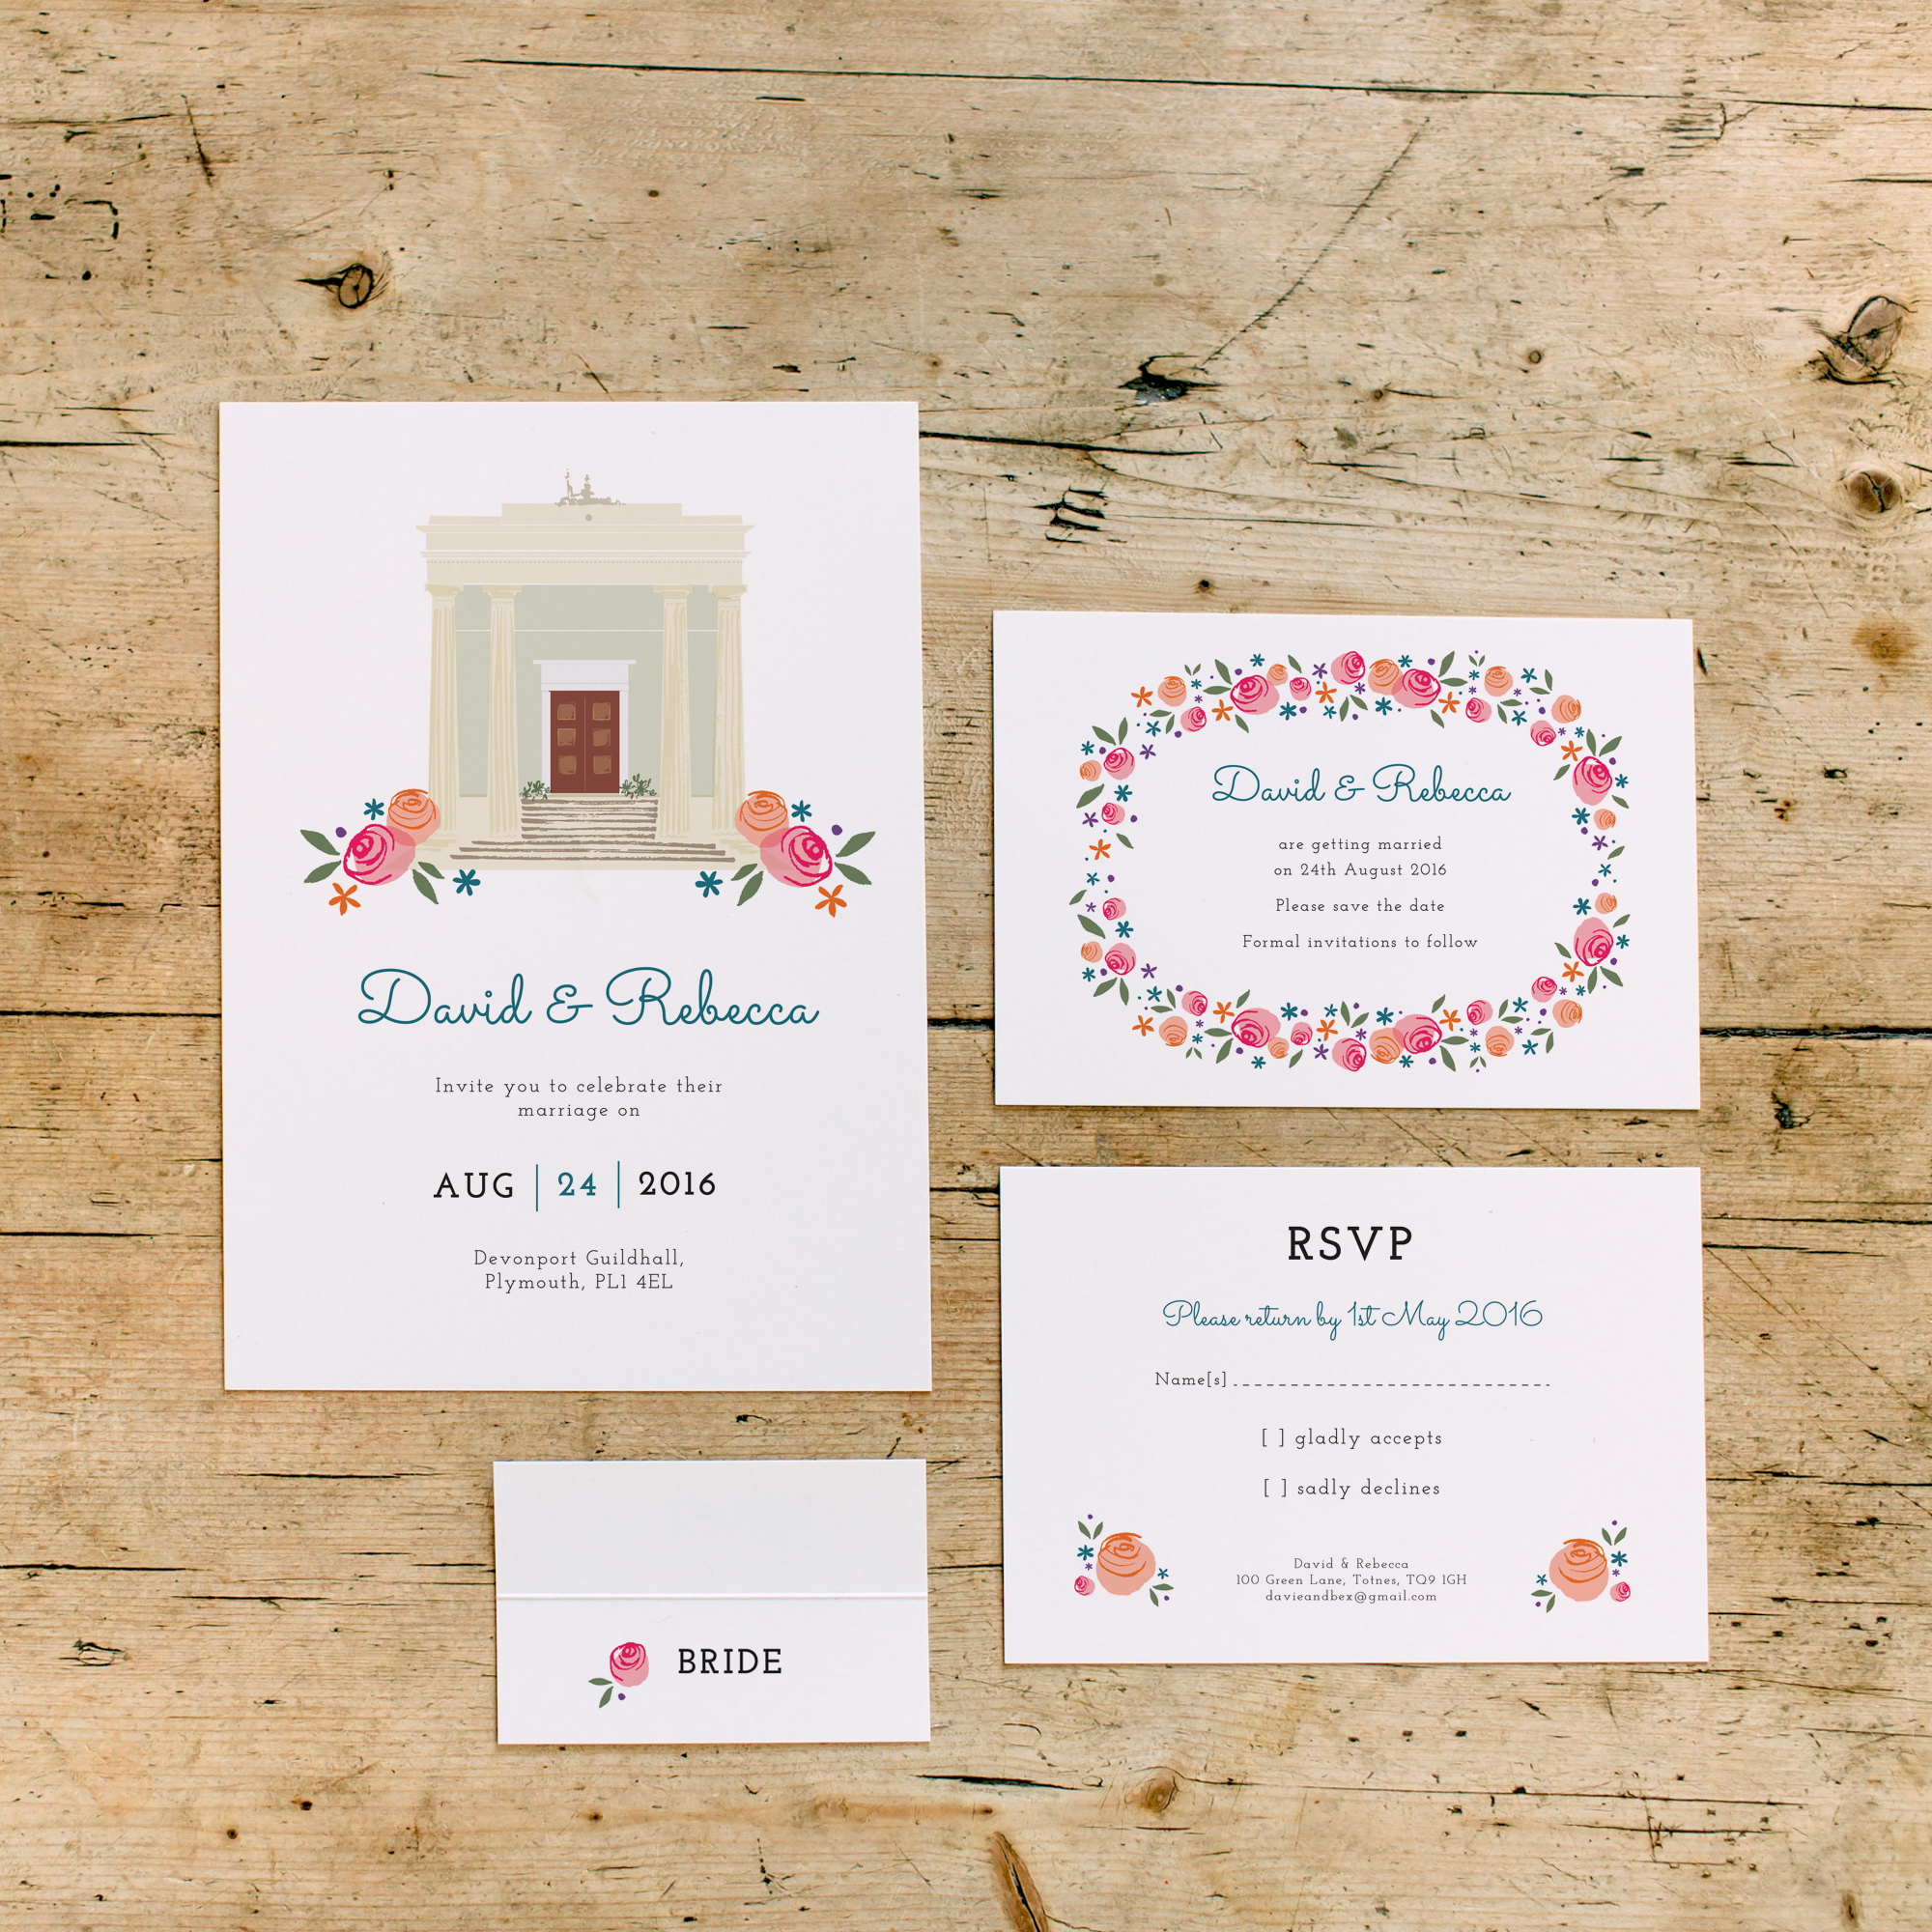 dearly-beloved-devonport-guildhall-wedding-stationery